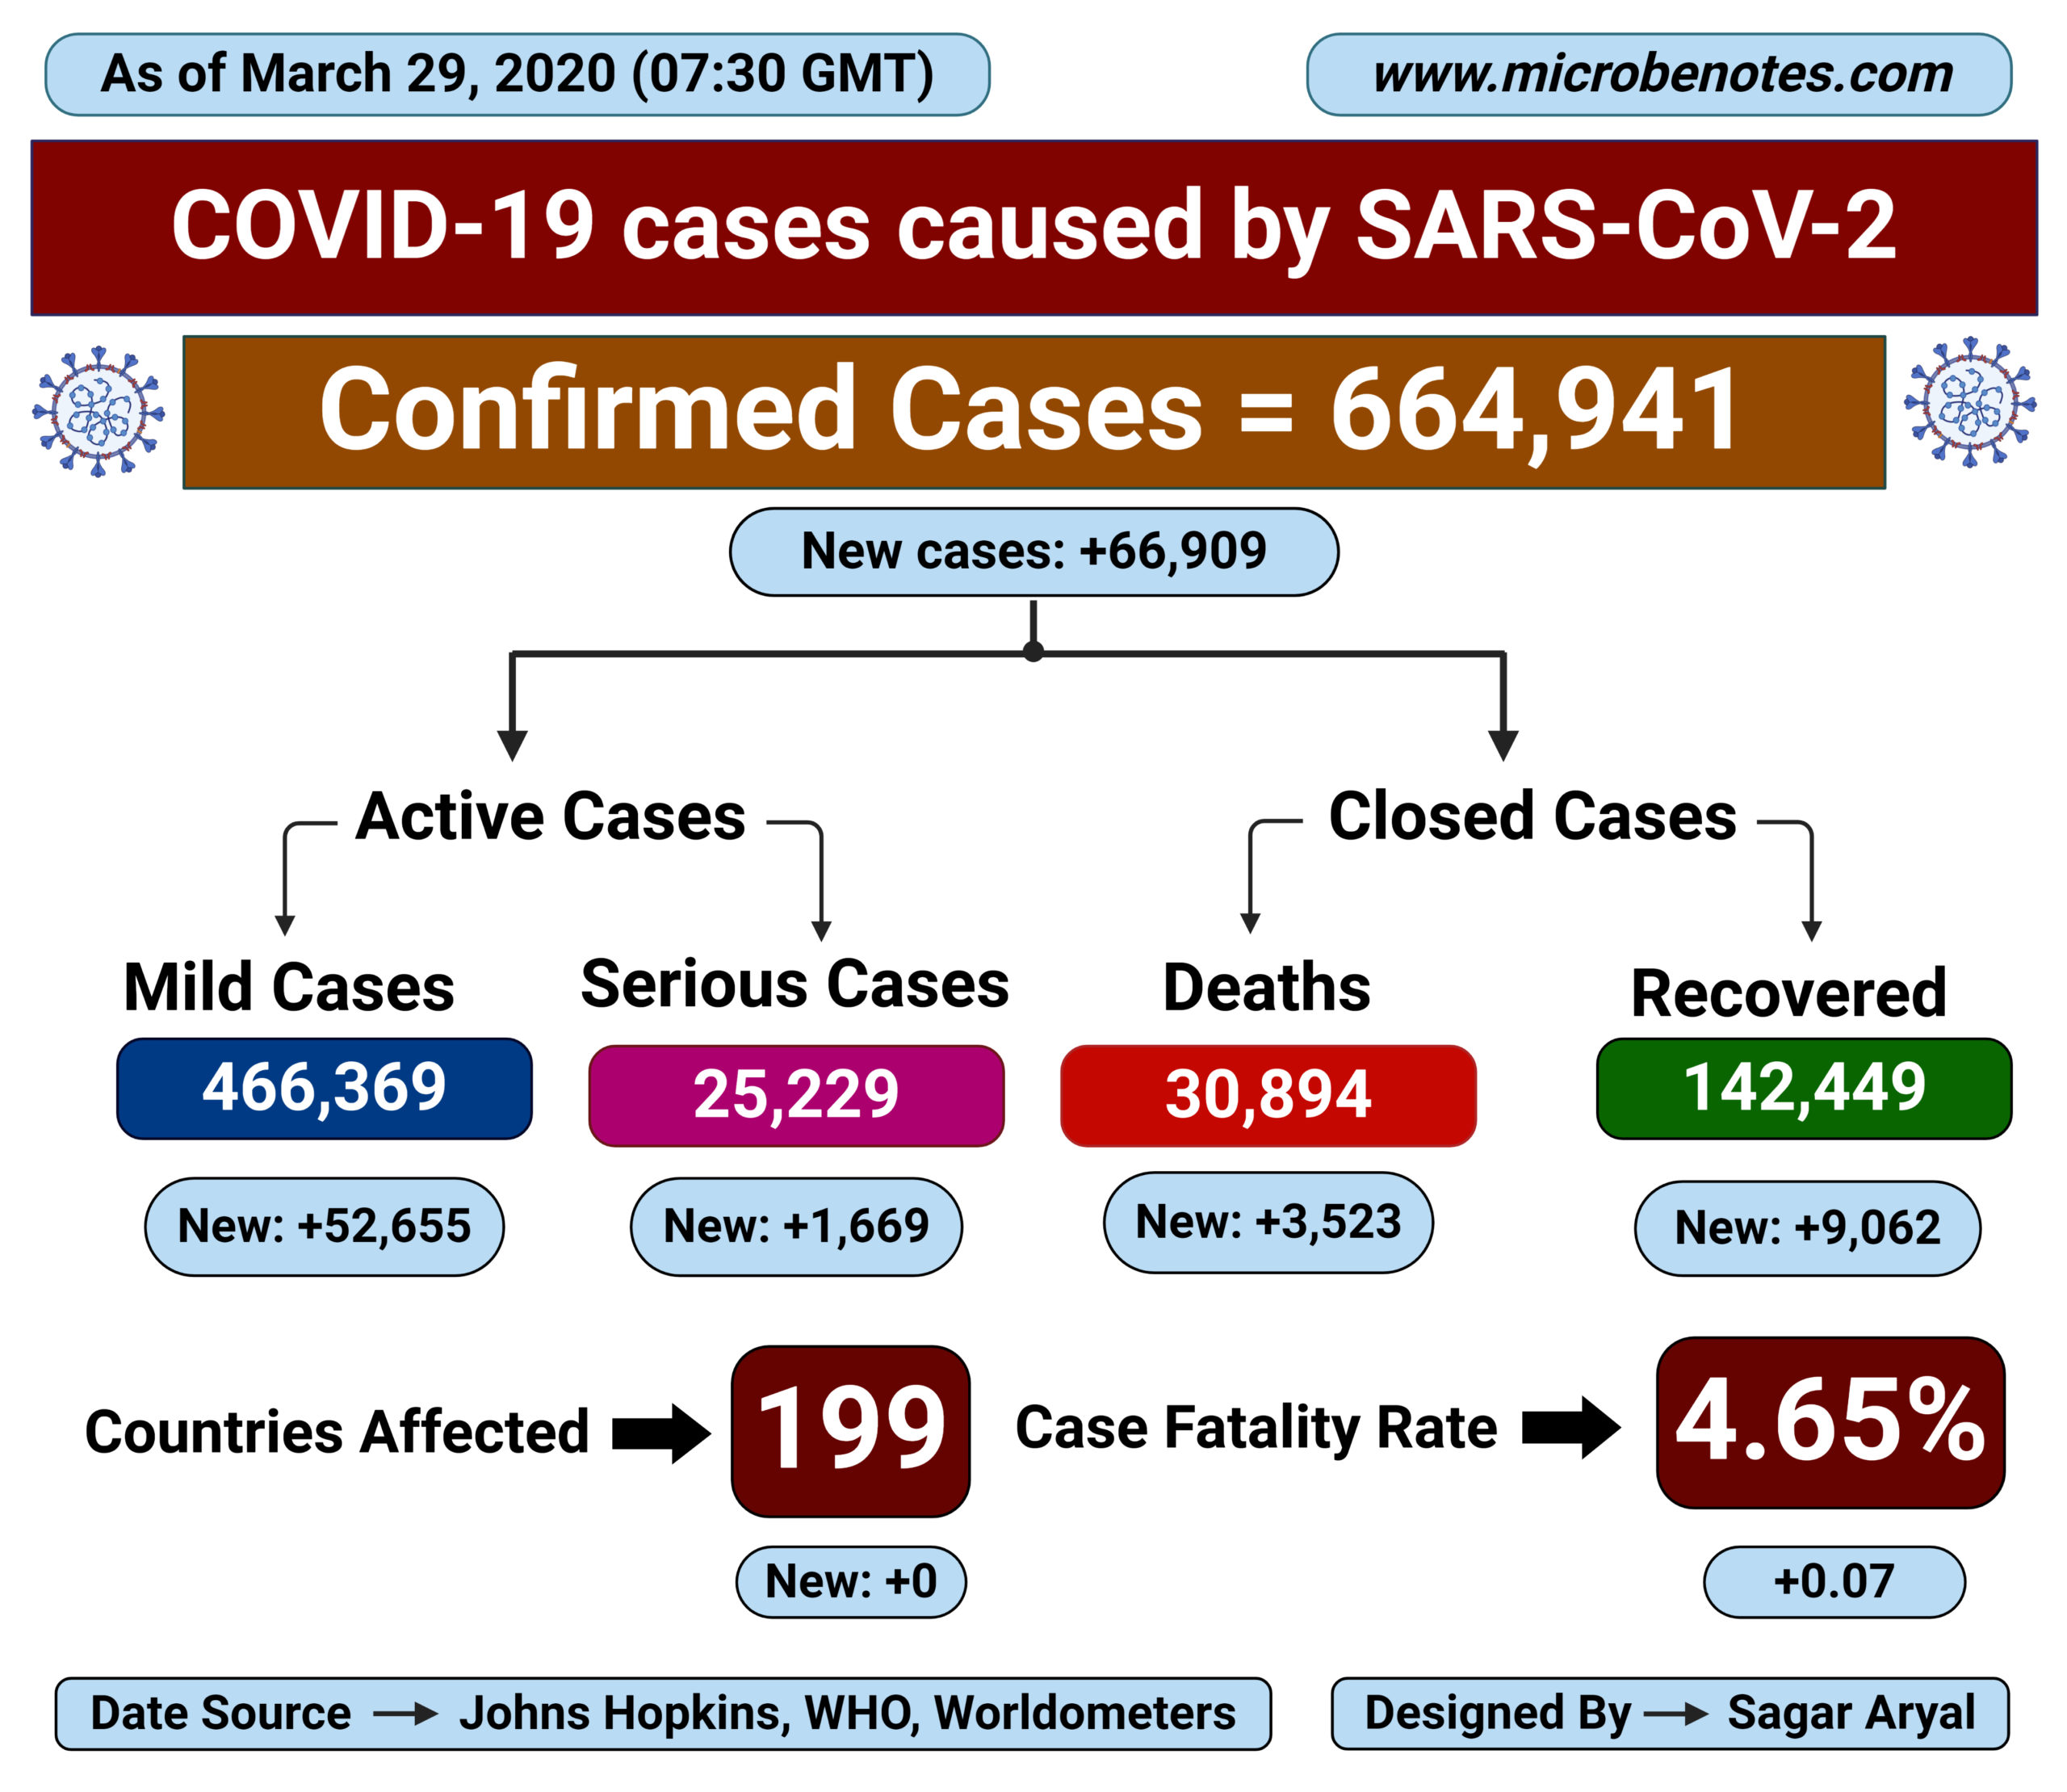 Epidemiology of COVID-19 caused by SARS-CoV-2 as of March 29, 2020